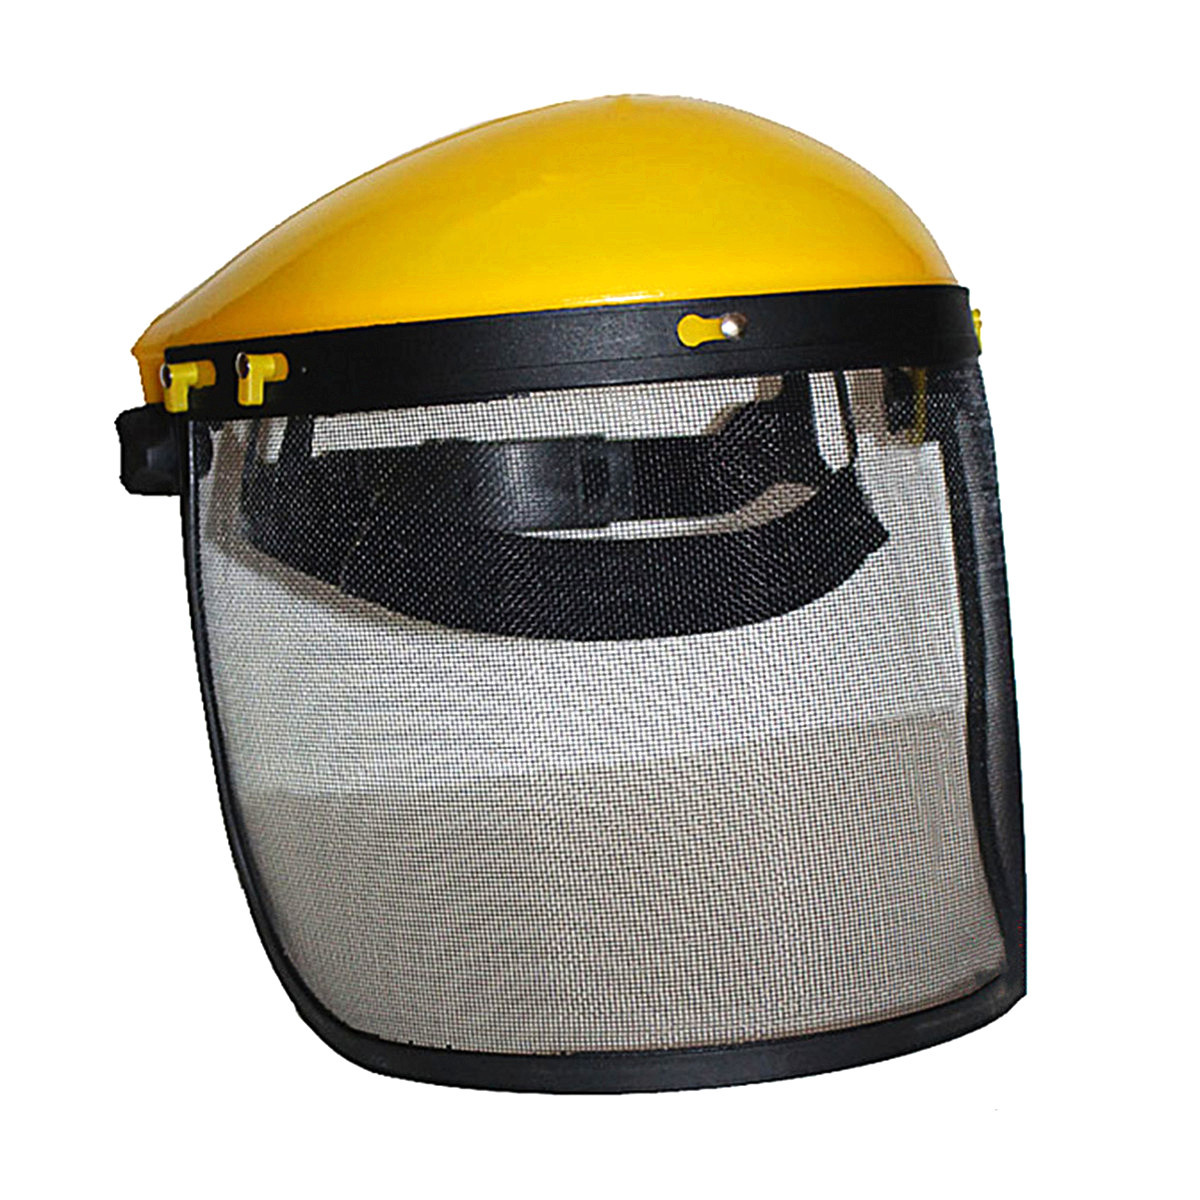 Mesh Chain Saw Safety Helmet Logging Brush Cutter Forestry Visor Hard Hat 5414a2515d23